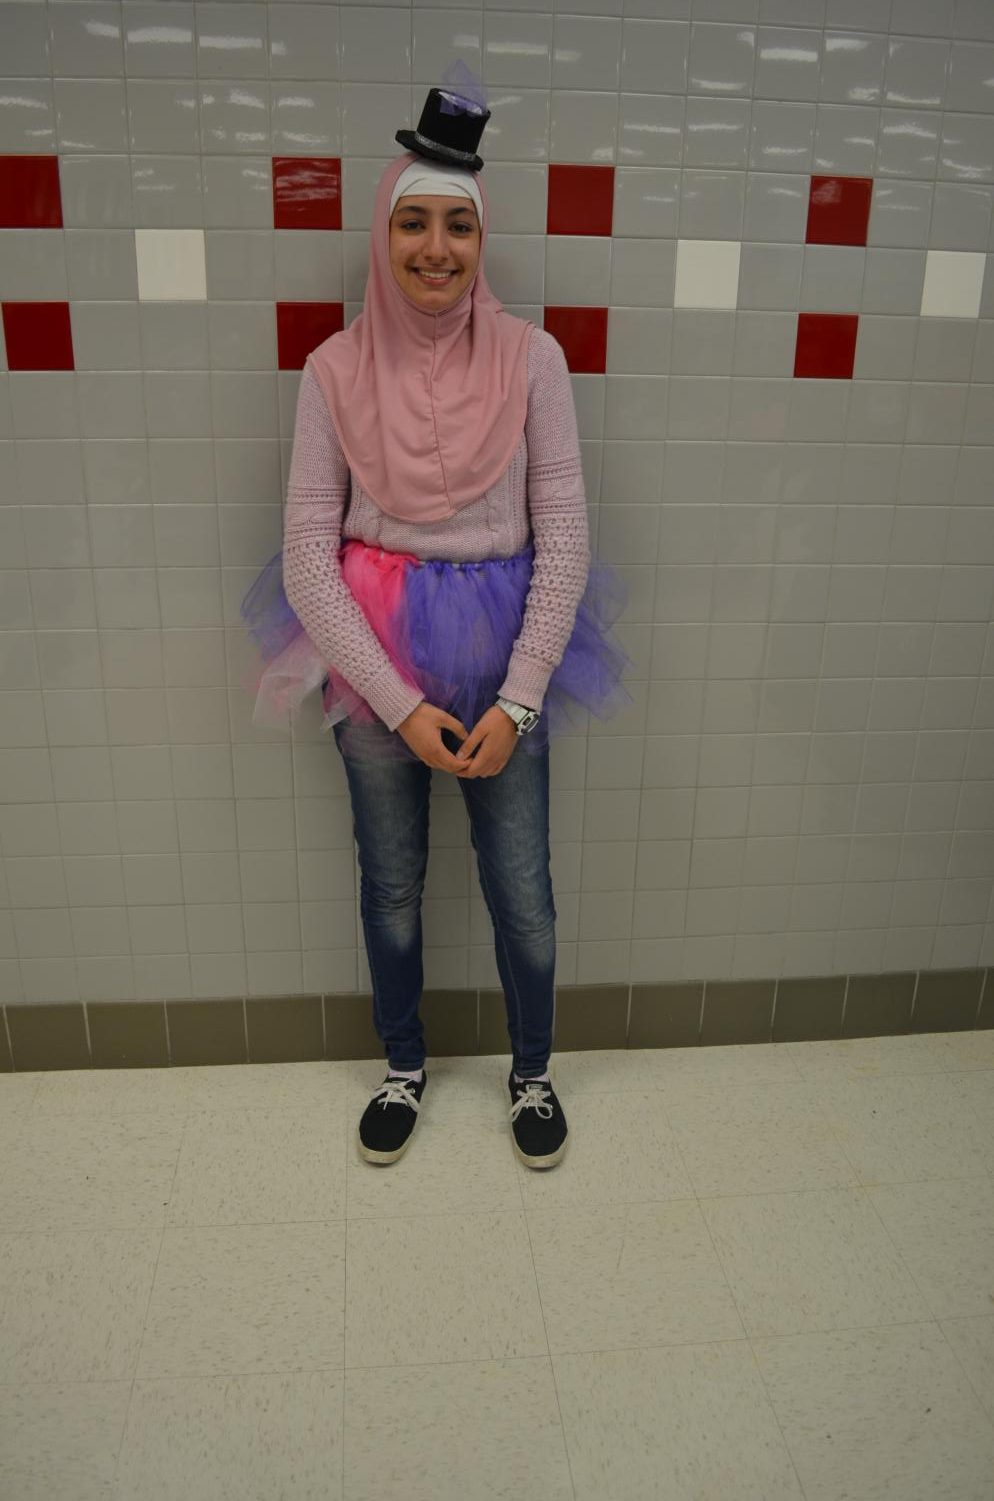 Sophomore+Kani+Khaled+dresses+up+as+a+My+Little+Pony+character%2C+Twilight+Sparkle.